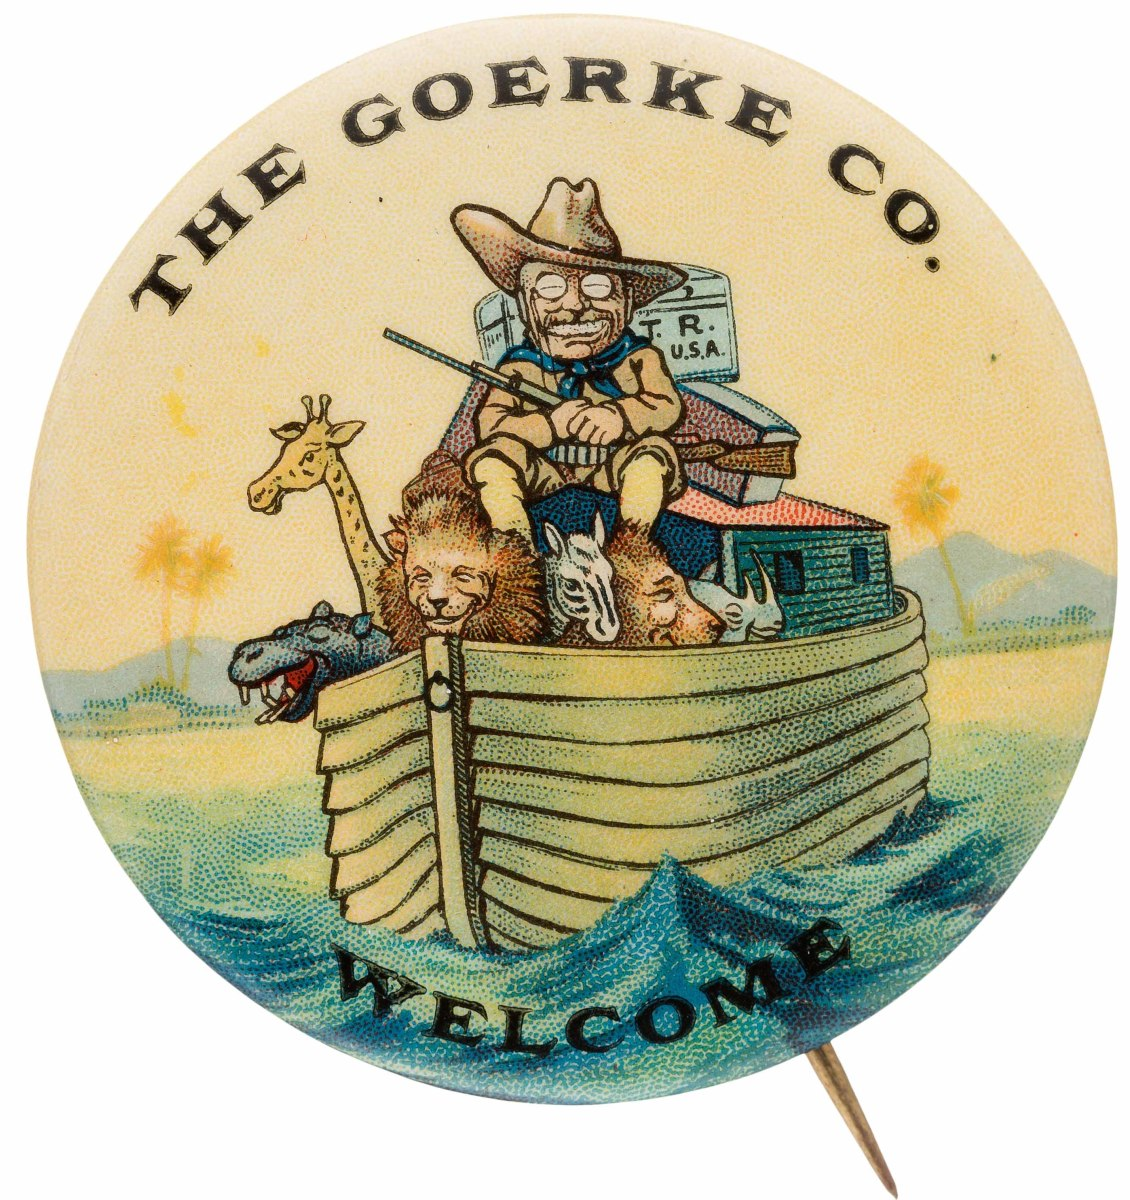 Teddy Roosevelt 1910 button commemorating his return from safari in Africa. Put out by the Goerke Co.,this rare item is considered one of the top Roosevelt pin-backs. Value: $9,000.